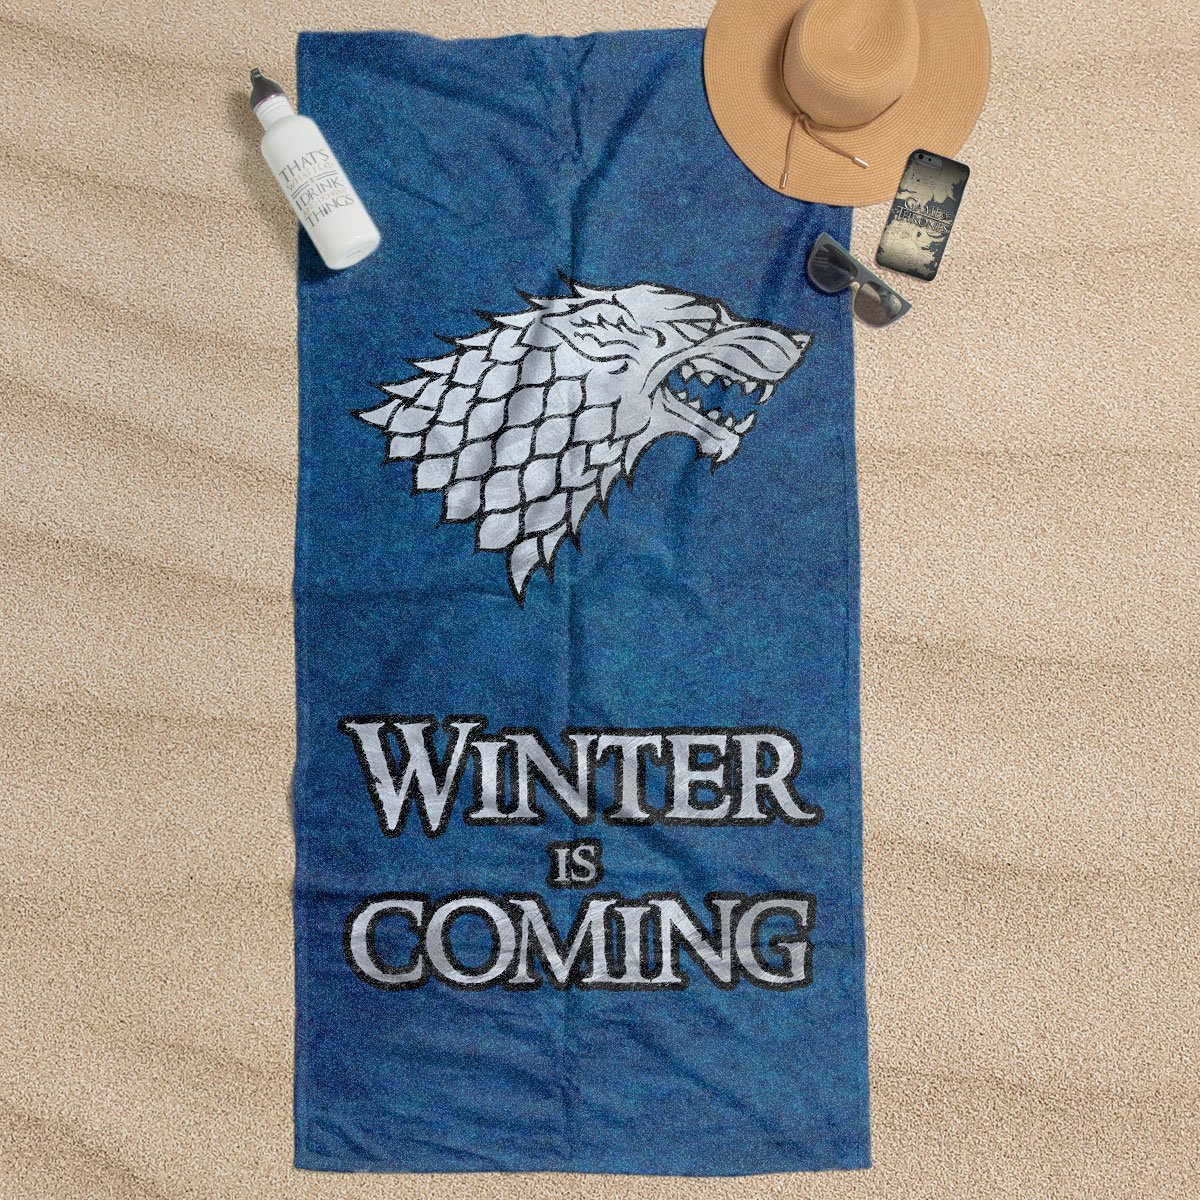 1d4ff8d1 ... on Instagram for a chance to win this Game of Thrones beach towel!  https://bit.ly/2Xgh1I7 . . . #CafePress  #GameofThronespic.twitter.com/qwiQnLkNl0